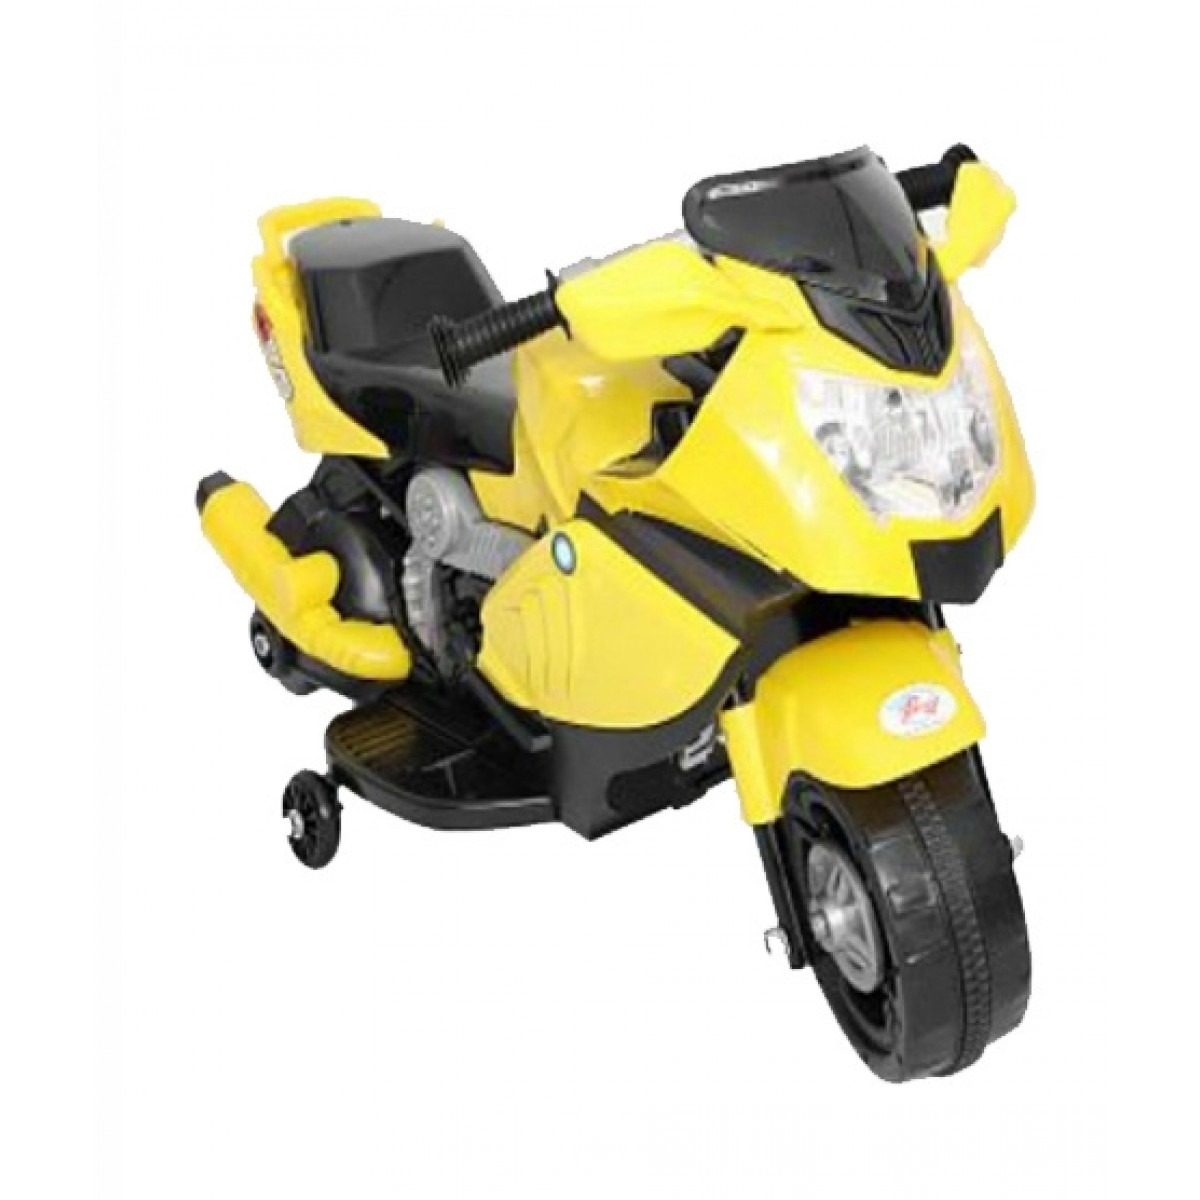 101a980c614 Fastrade Battery Operated Bike For Kids Price in Pakistan